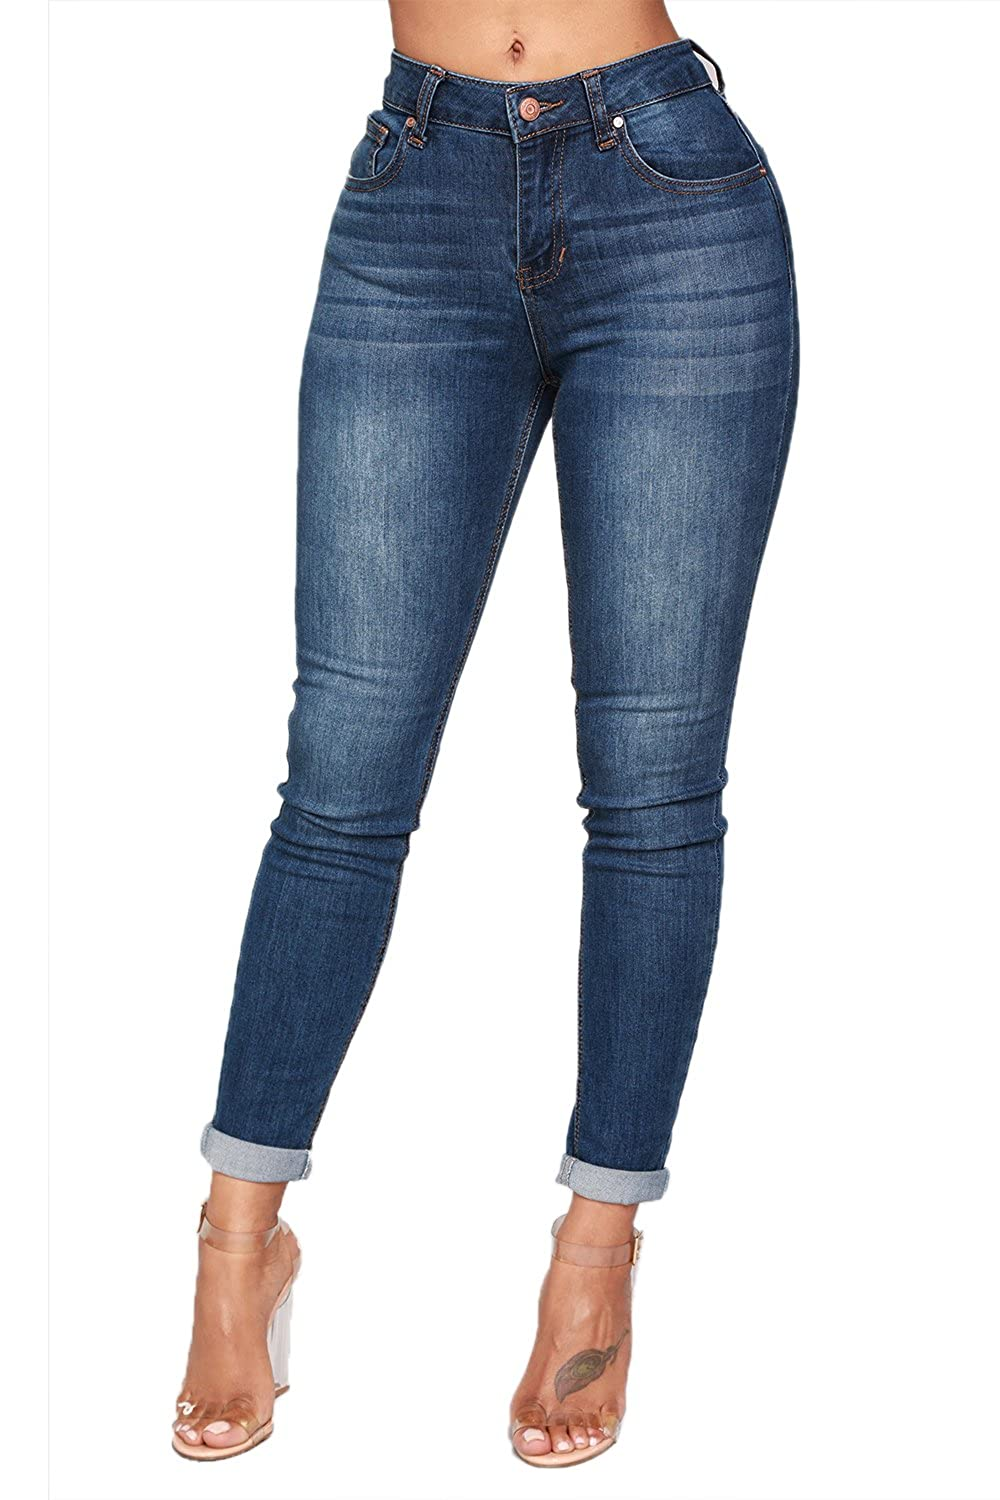 780b2c19962 Material: Cotton+Polyester, stretchy and comfortable to wear. Mid Waist:  Zipper closure and traditional five-pockets styling basic skinny jean for  women.